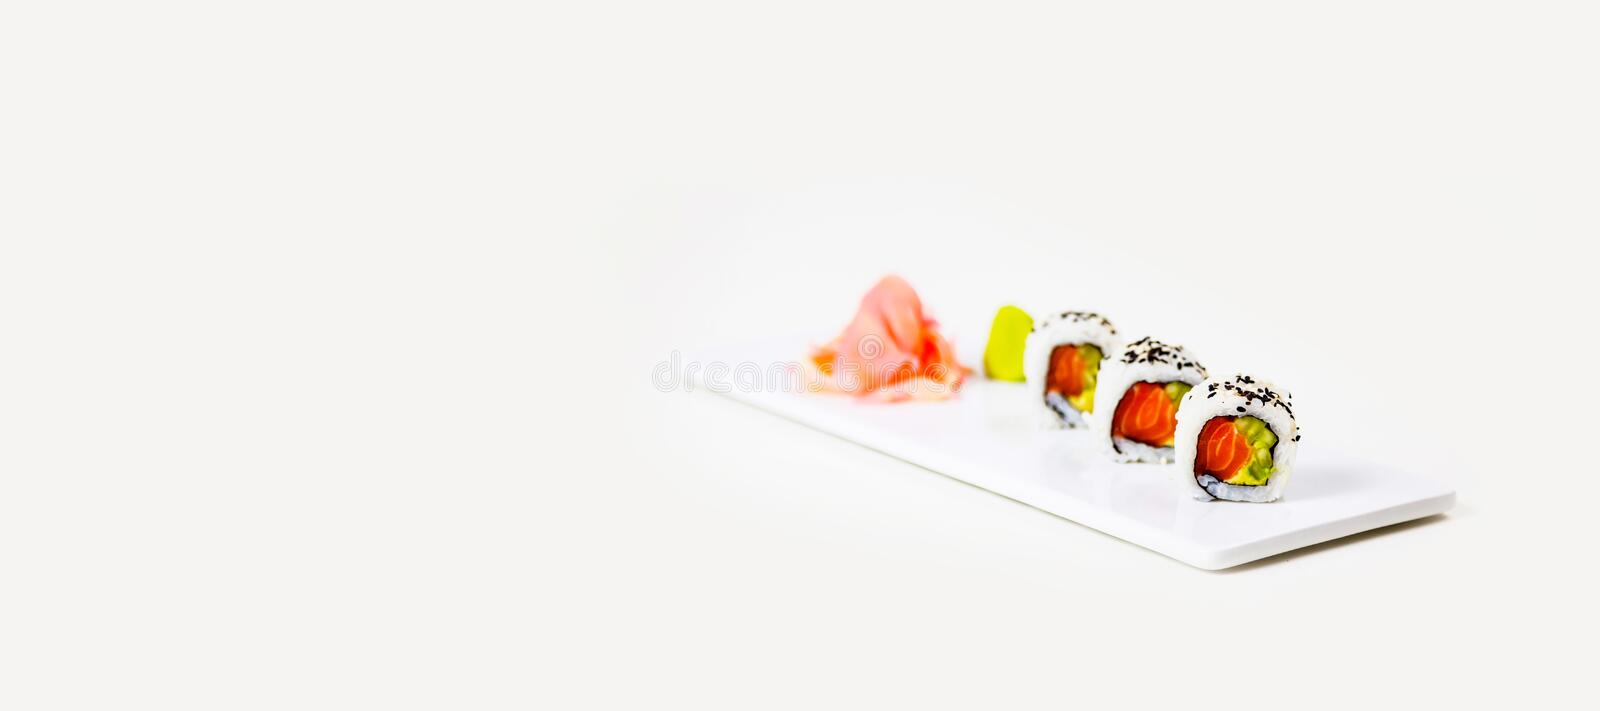 Sushi on a white plate on a white background stock photo